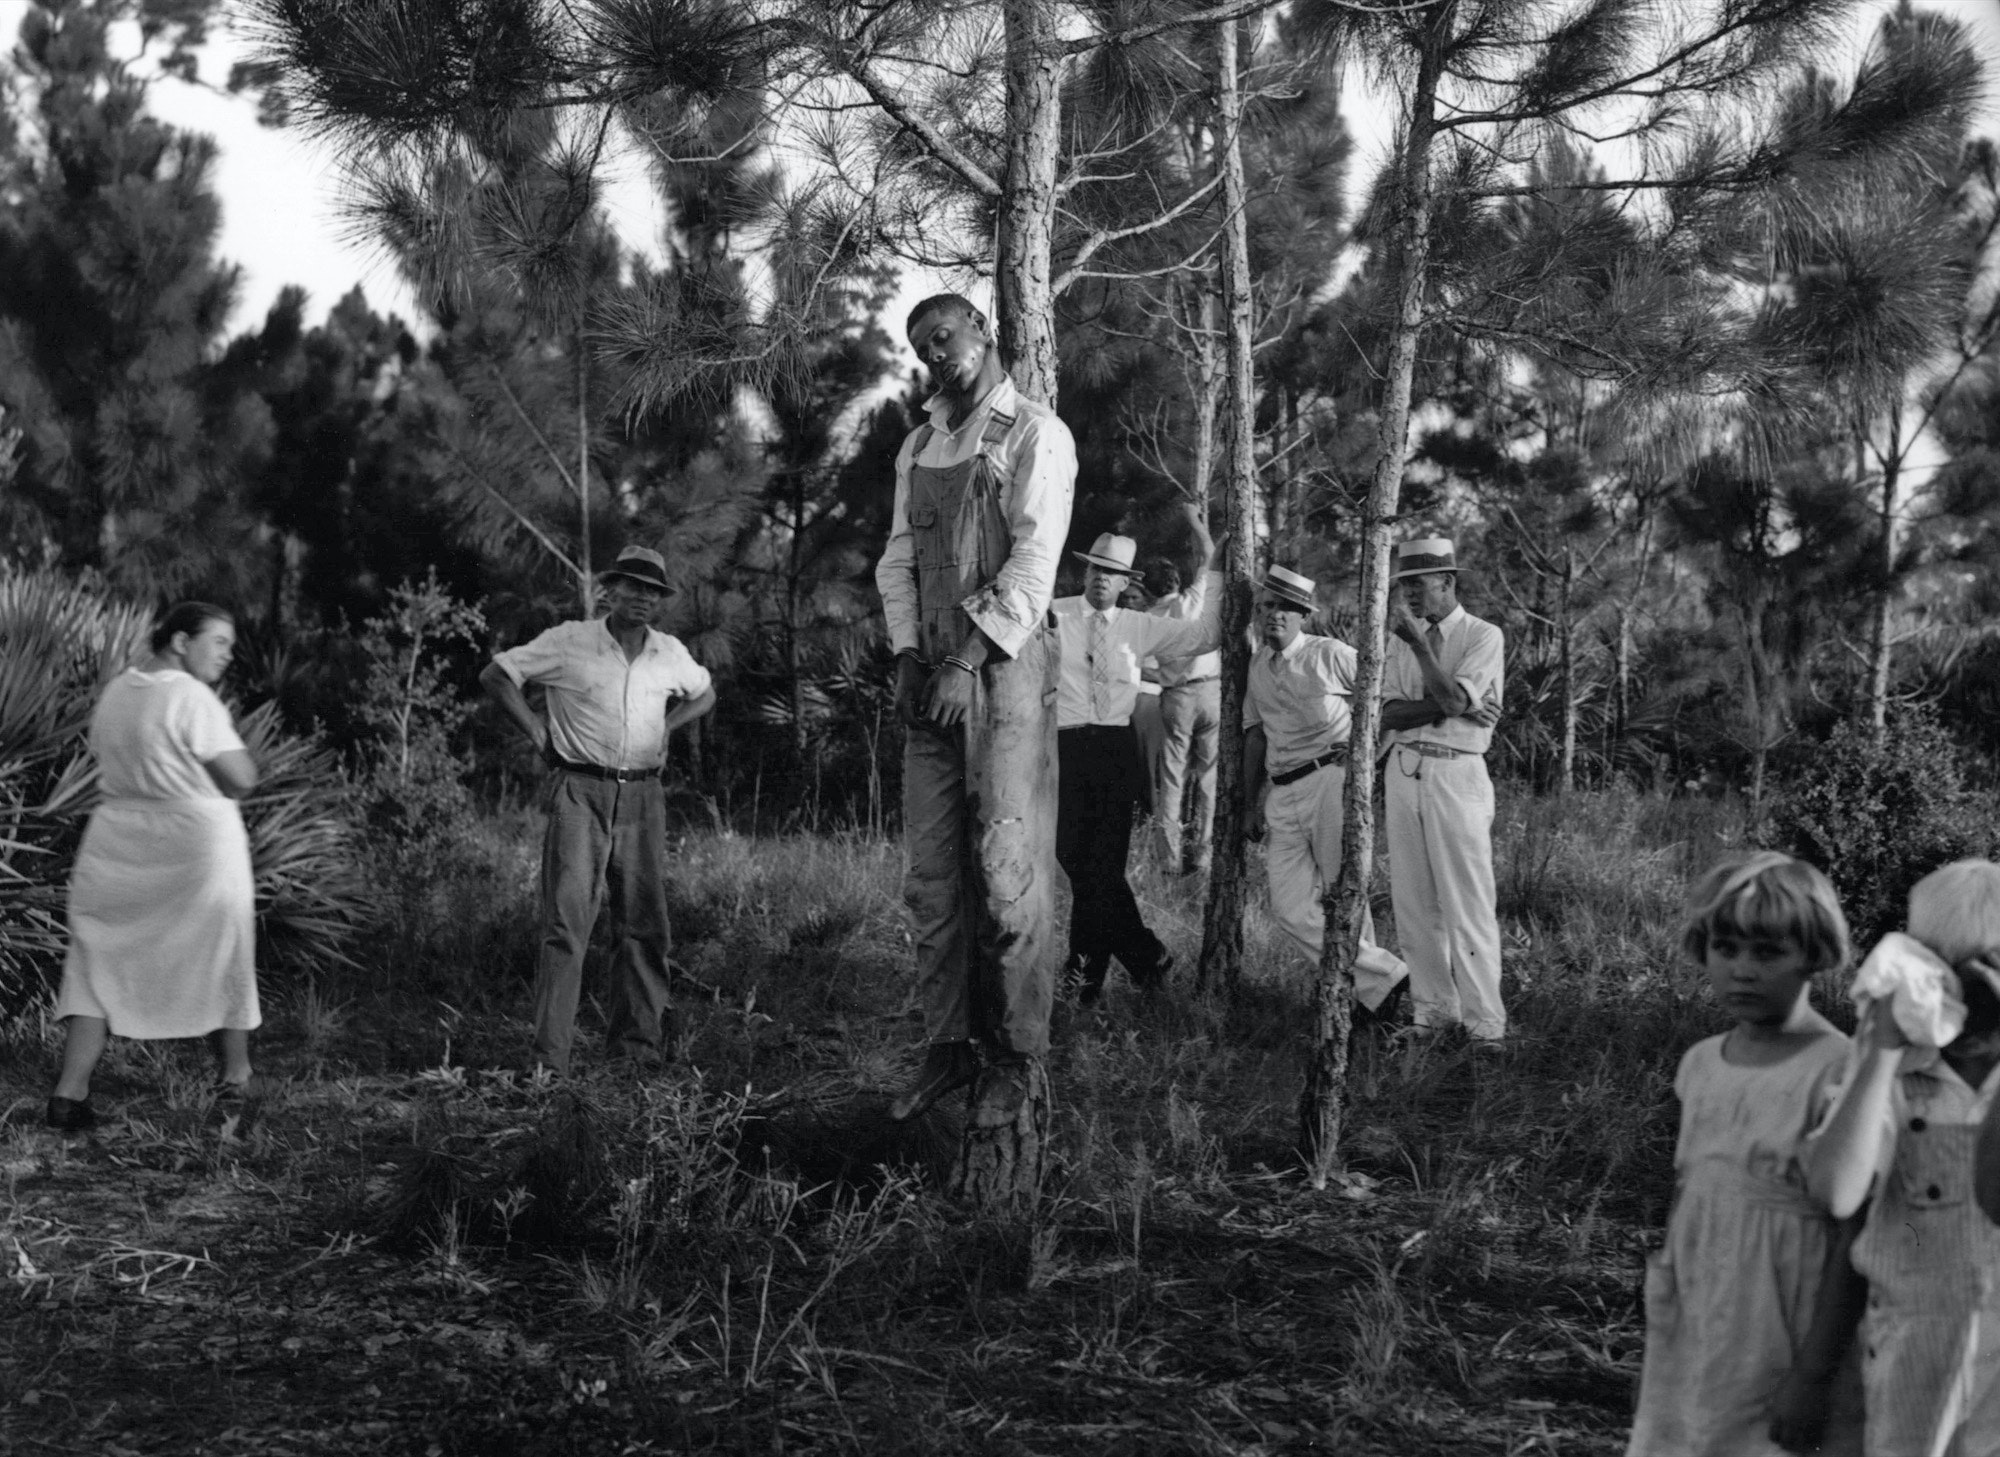 The body of Rubin Stacy, 32, hangs from a tree in Fort Lauderdale, Florida, as neighbors visit the site July 19, 1935. White lynchings of blacks were common during the era.